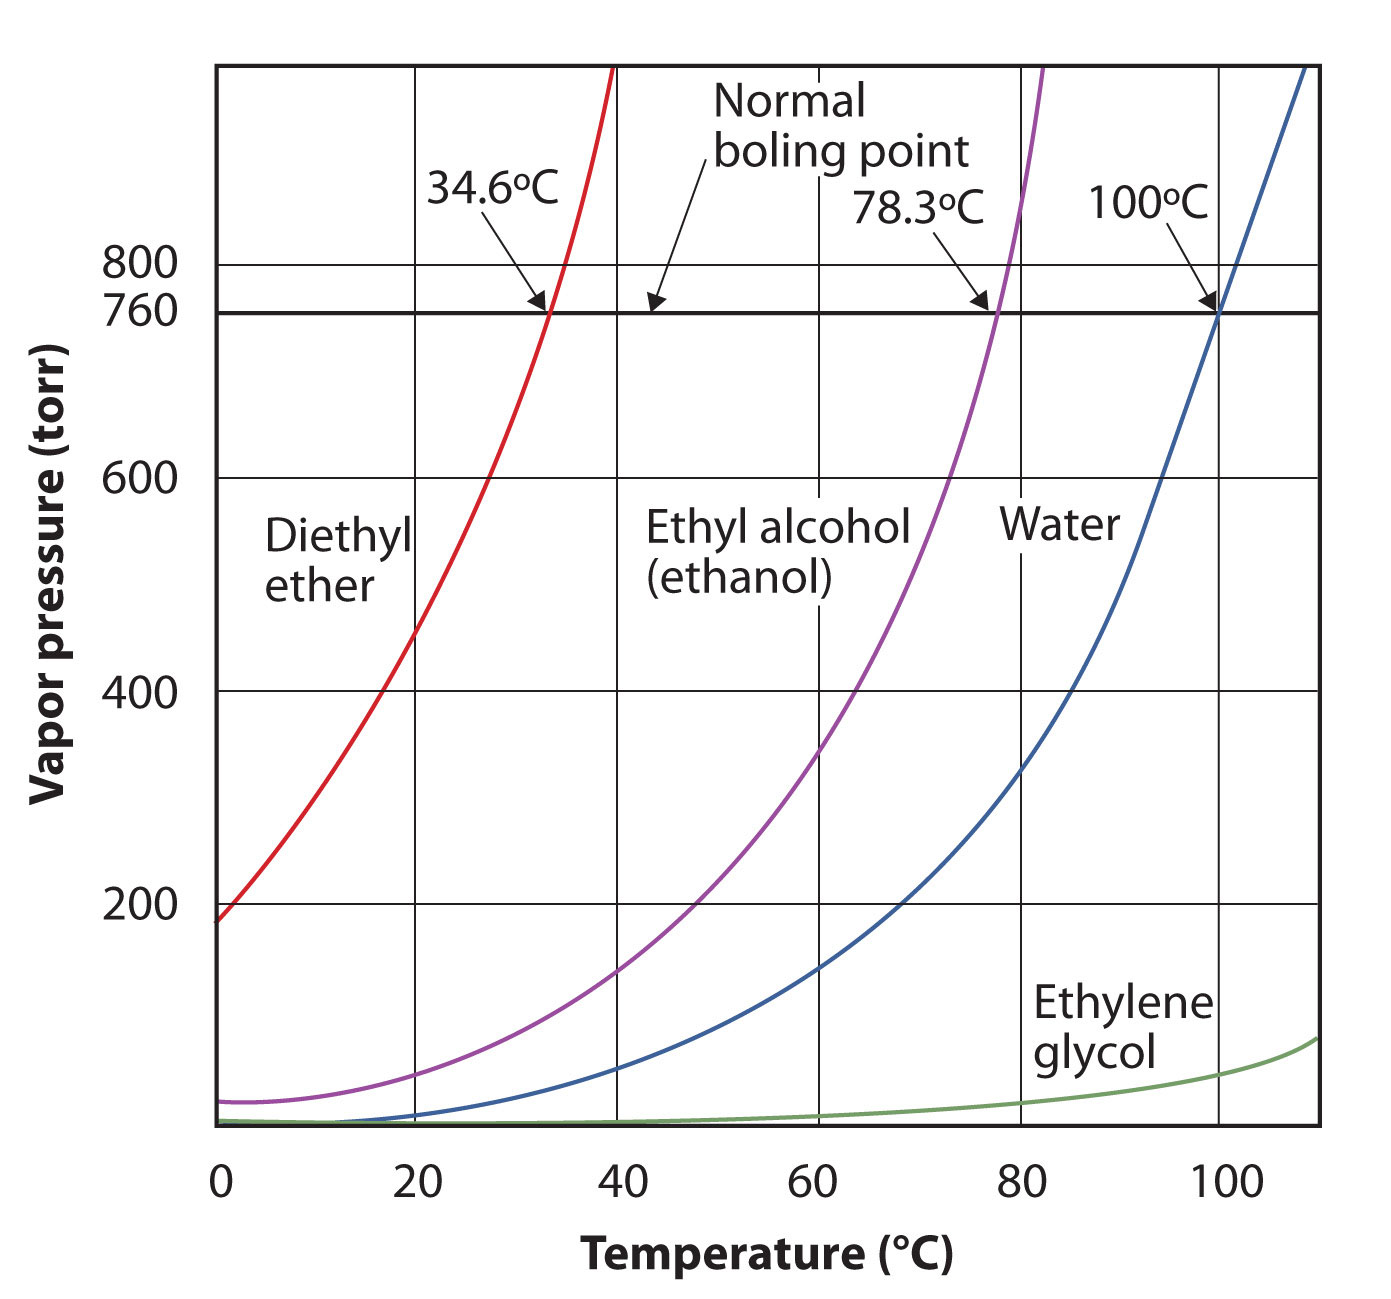 hight resolution of plot graph comparing the vapor pressure and temperature of diethyl ether ethanol water and